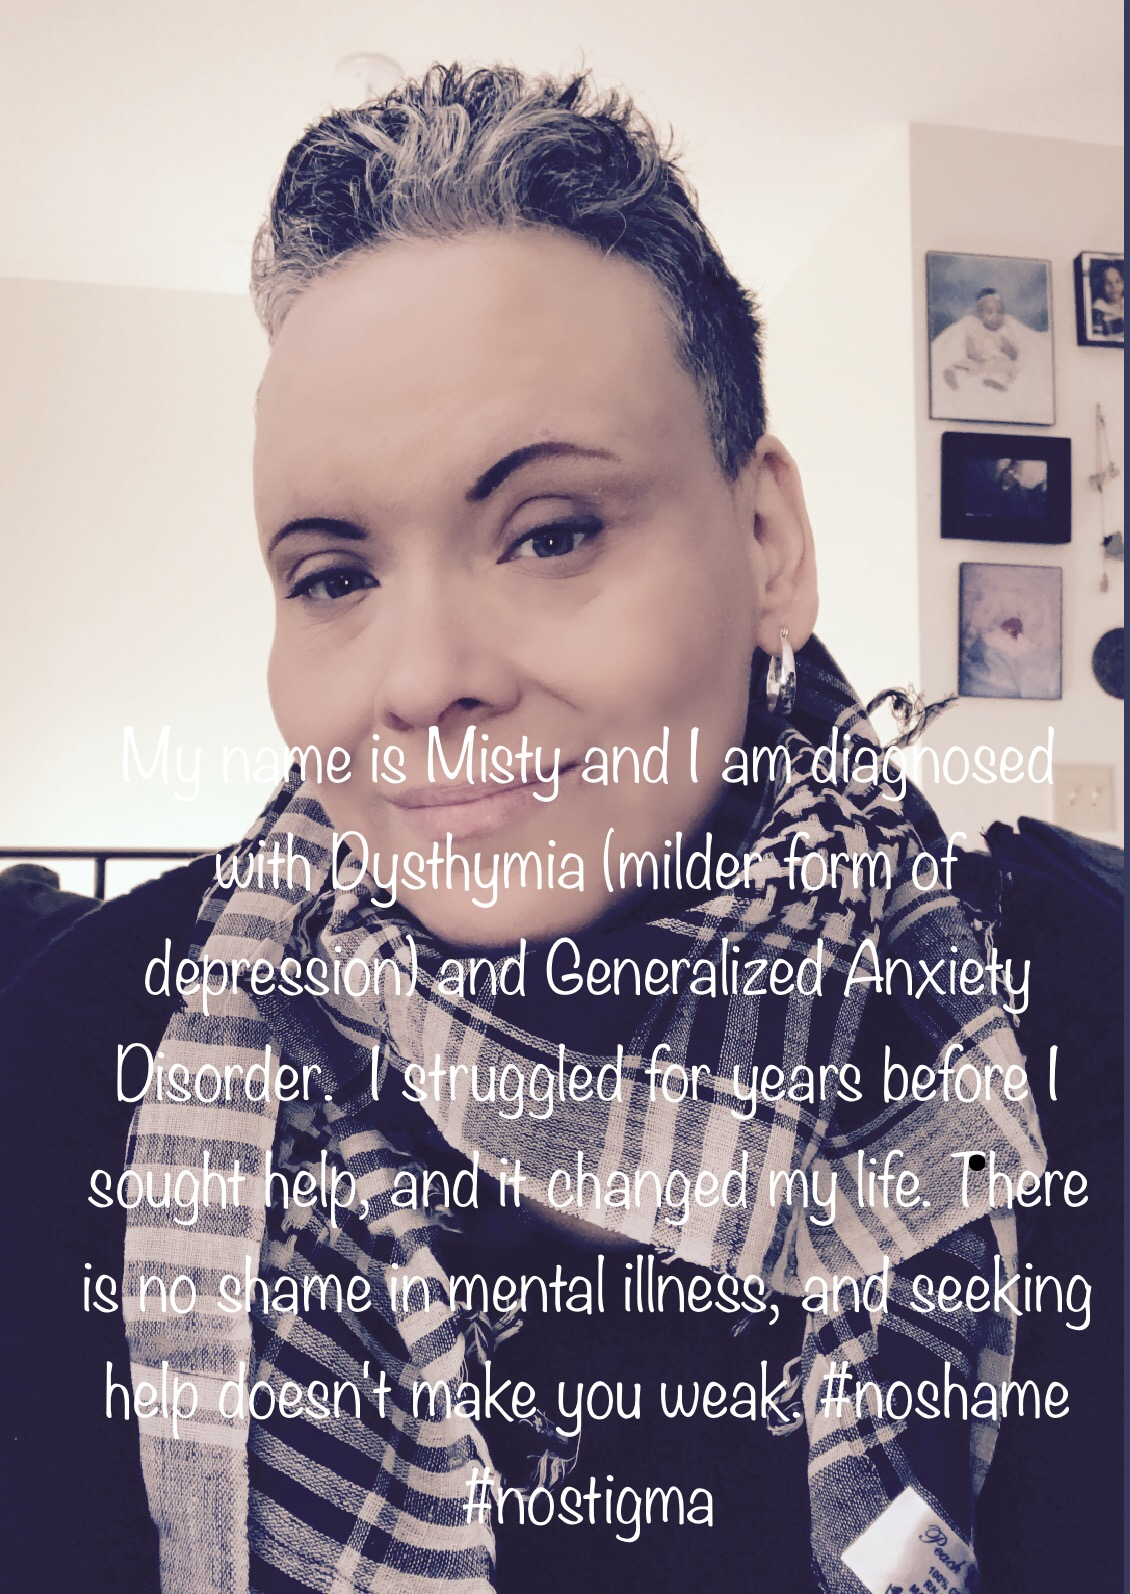 Sign: My name is Misty Aoudia and I am diagnosed with Dysthymia (milder form of depression) and Generalized Anxiety Disorder.  I struggled for years before I sought help, and it changed my life.  There is no shame in mental illness, and getting help doesn't make you weak. #noshame #nostigma  Image description: Middle-aged woman with salt and pepper hair, short hair